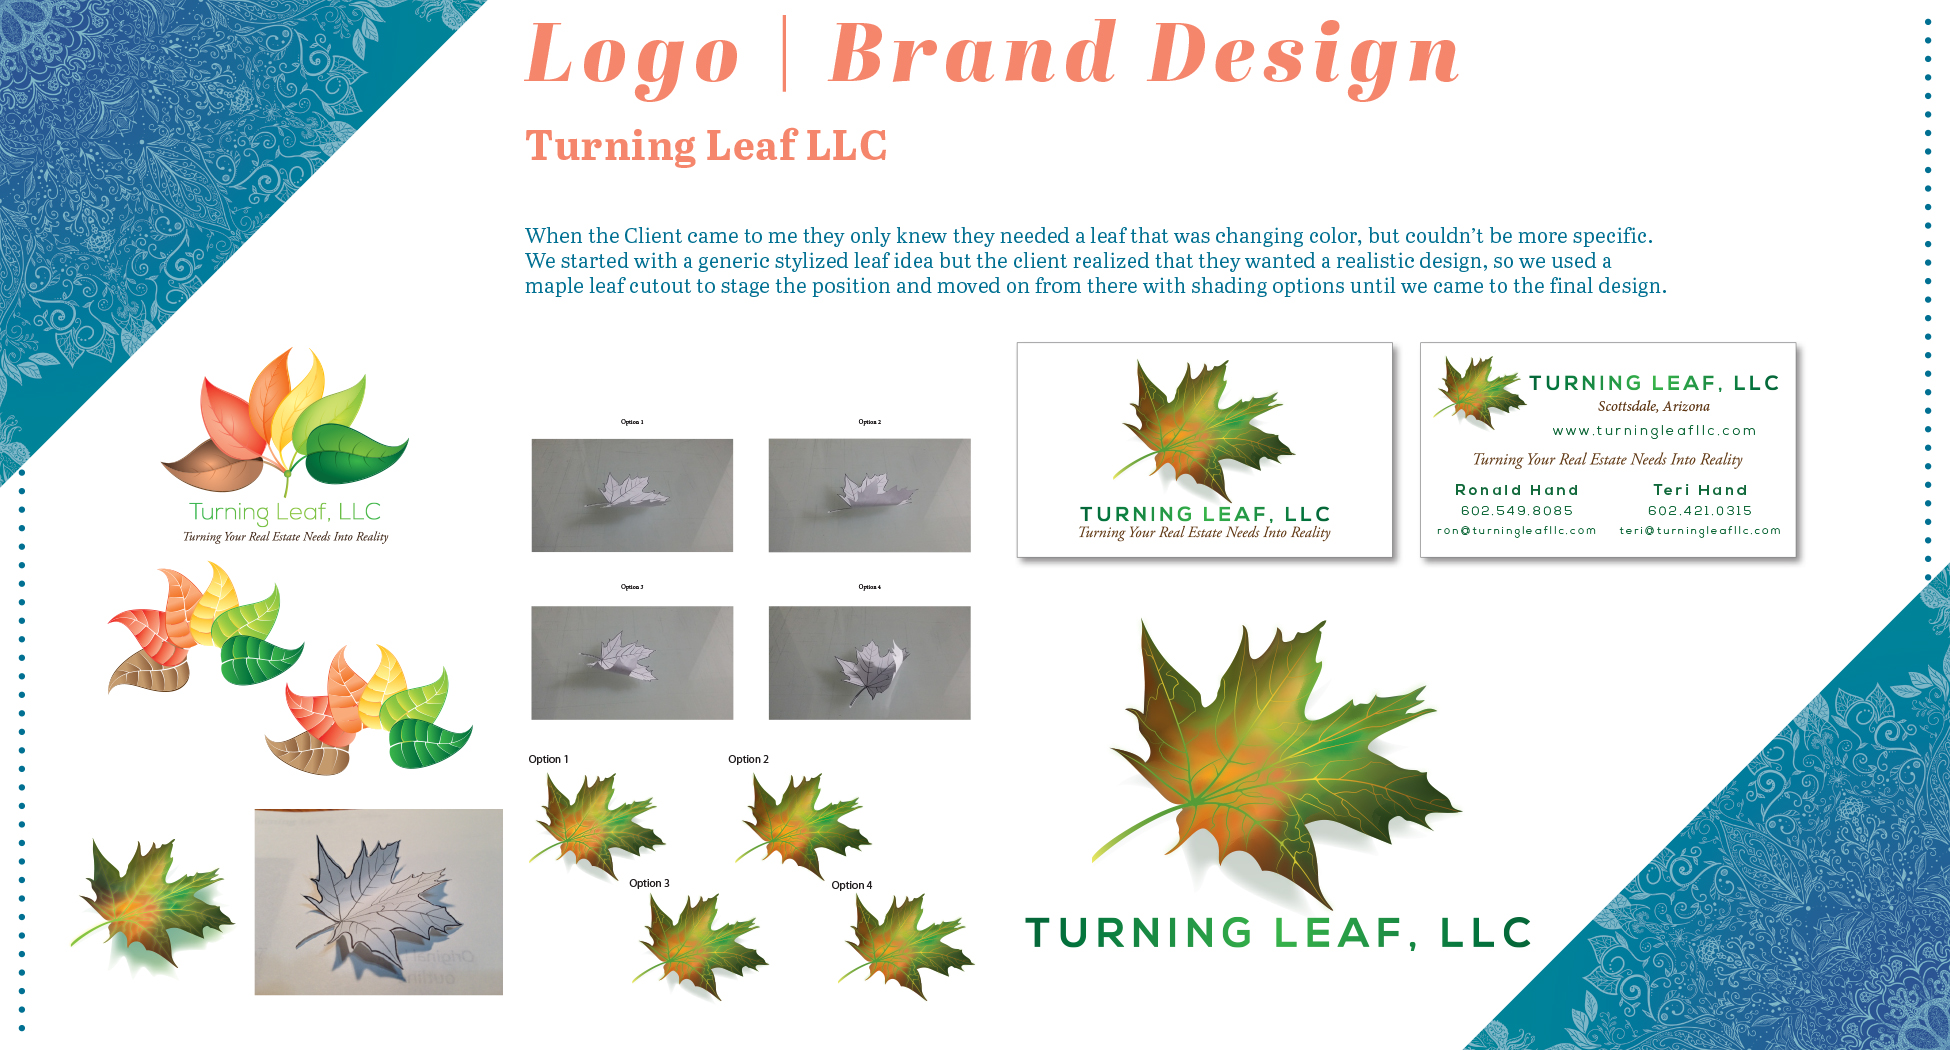 Rachel Camacho-McKee Graphic Design Portfolio Turning Leaf Logo Design Page